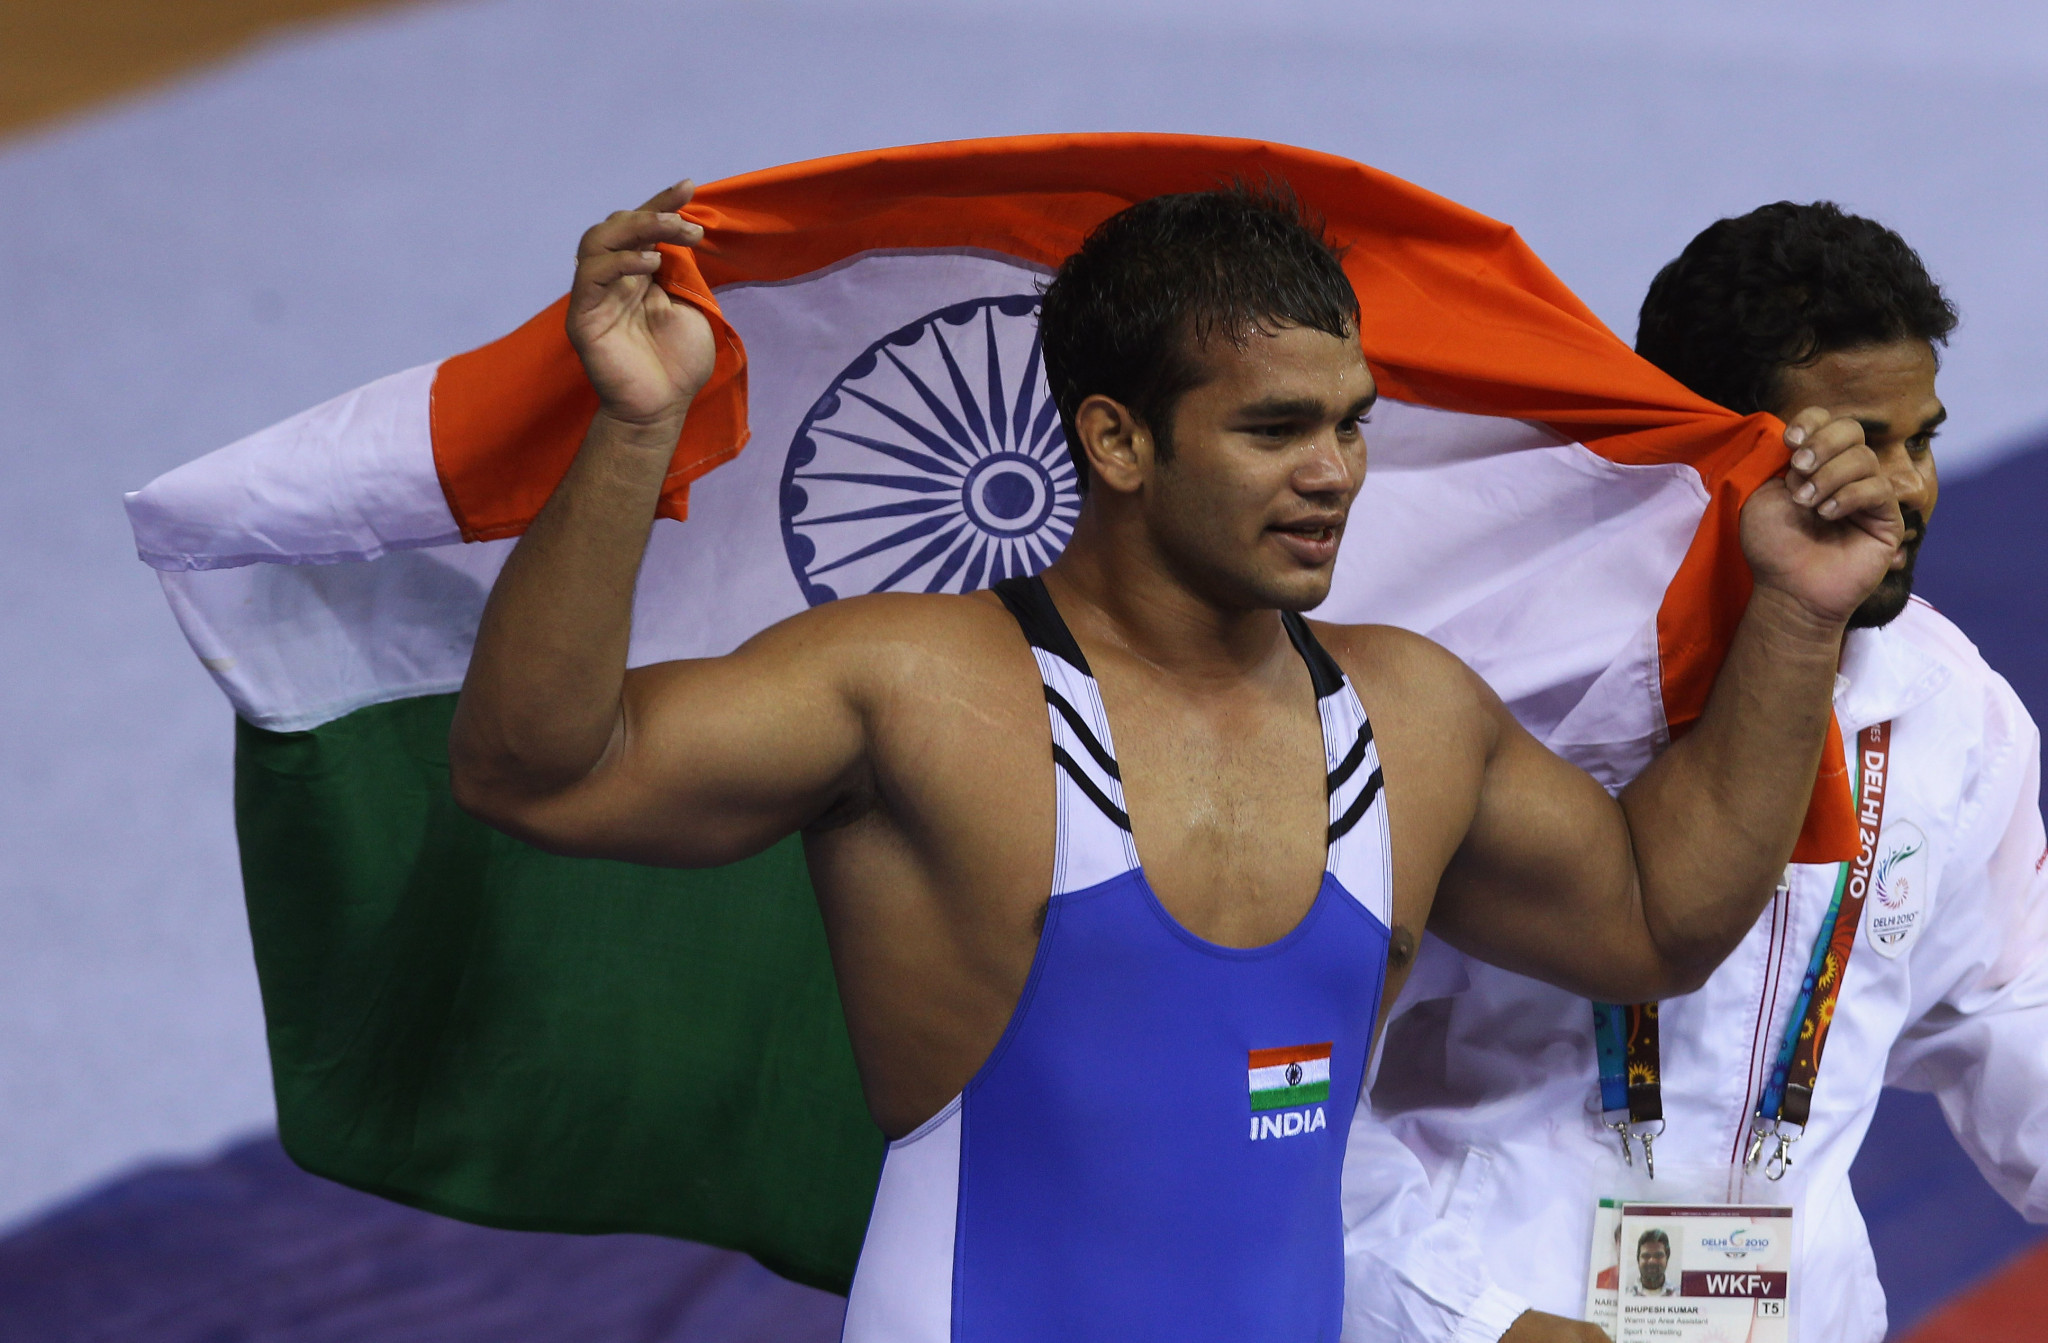 Dehli High Court urges quick completion of investigation into banned Indian wrestler Yadav